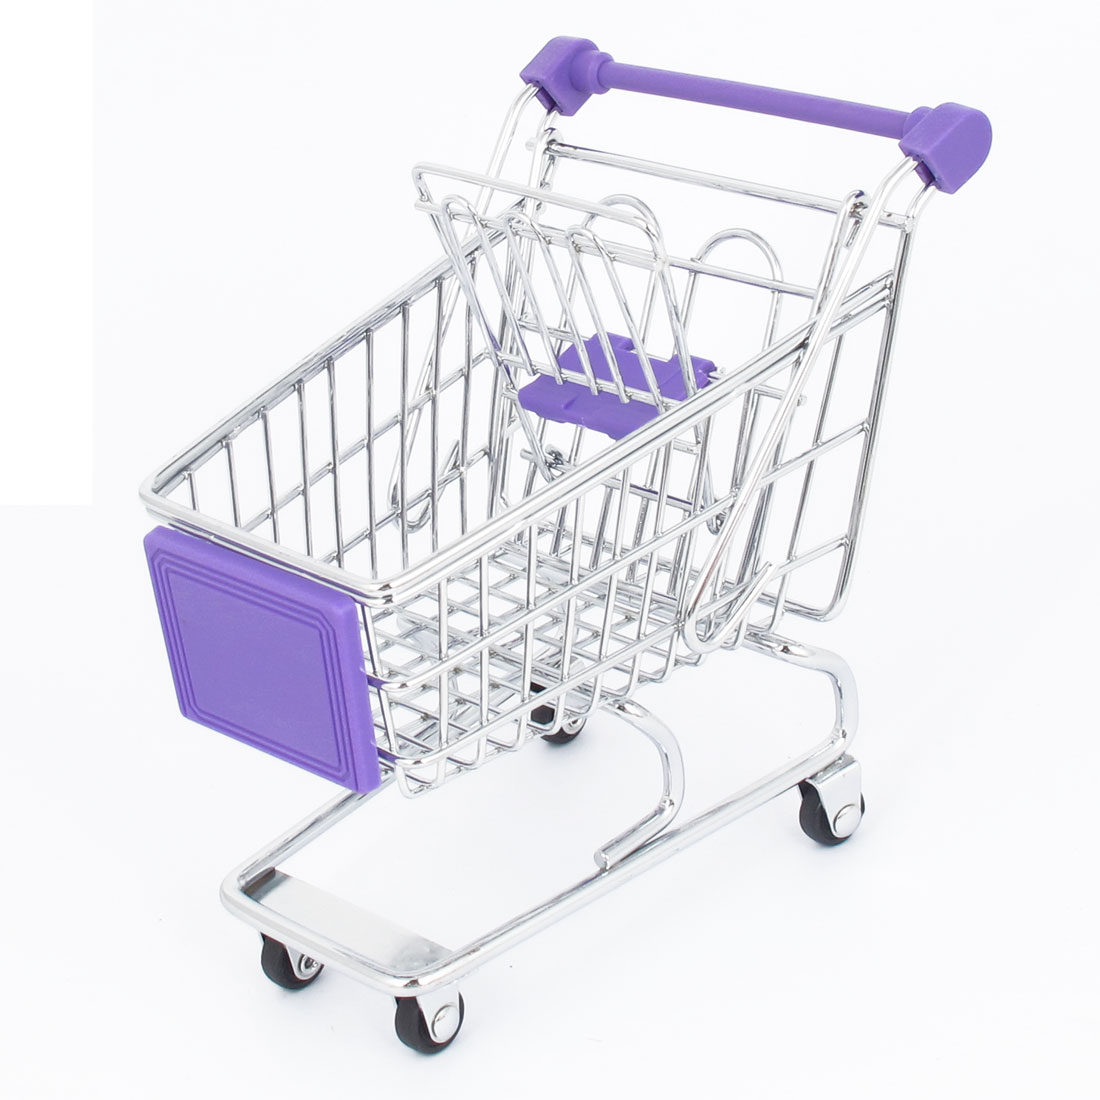 Stainless Steel Supermarket Mini-Shopping Handcart Shopping Utility Cart Mode Purple